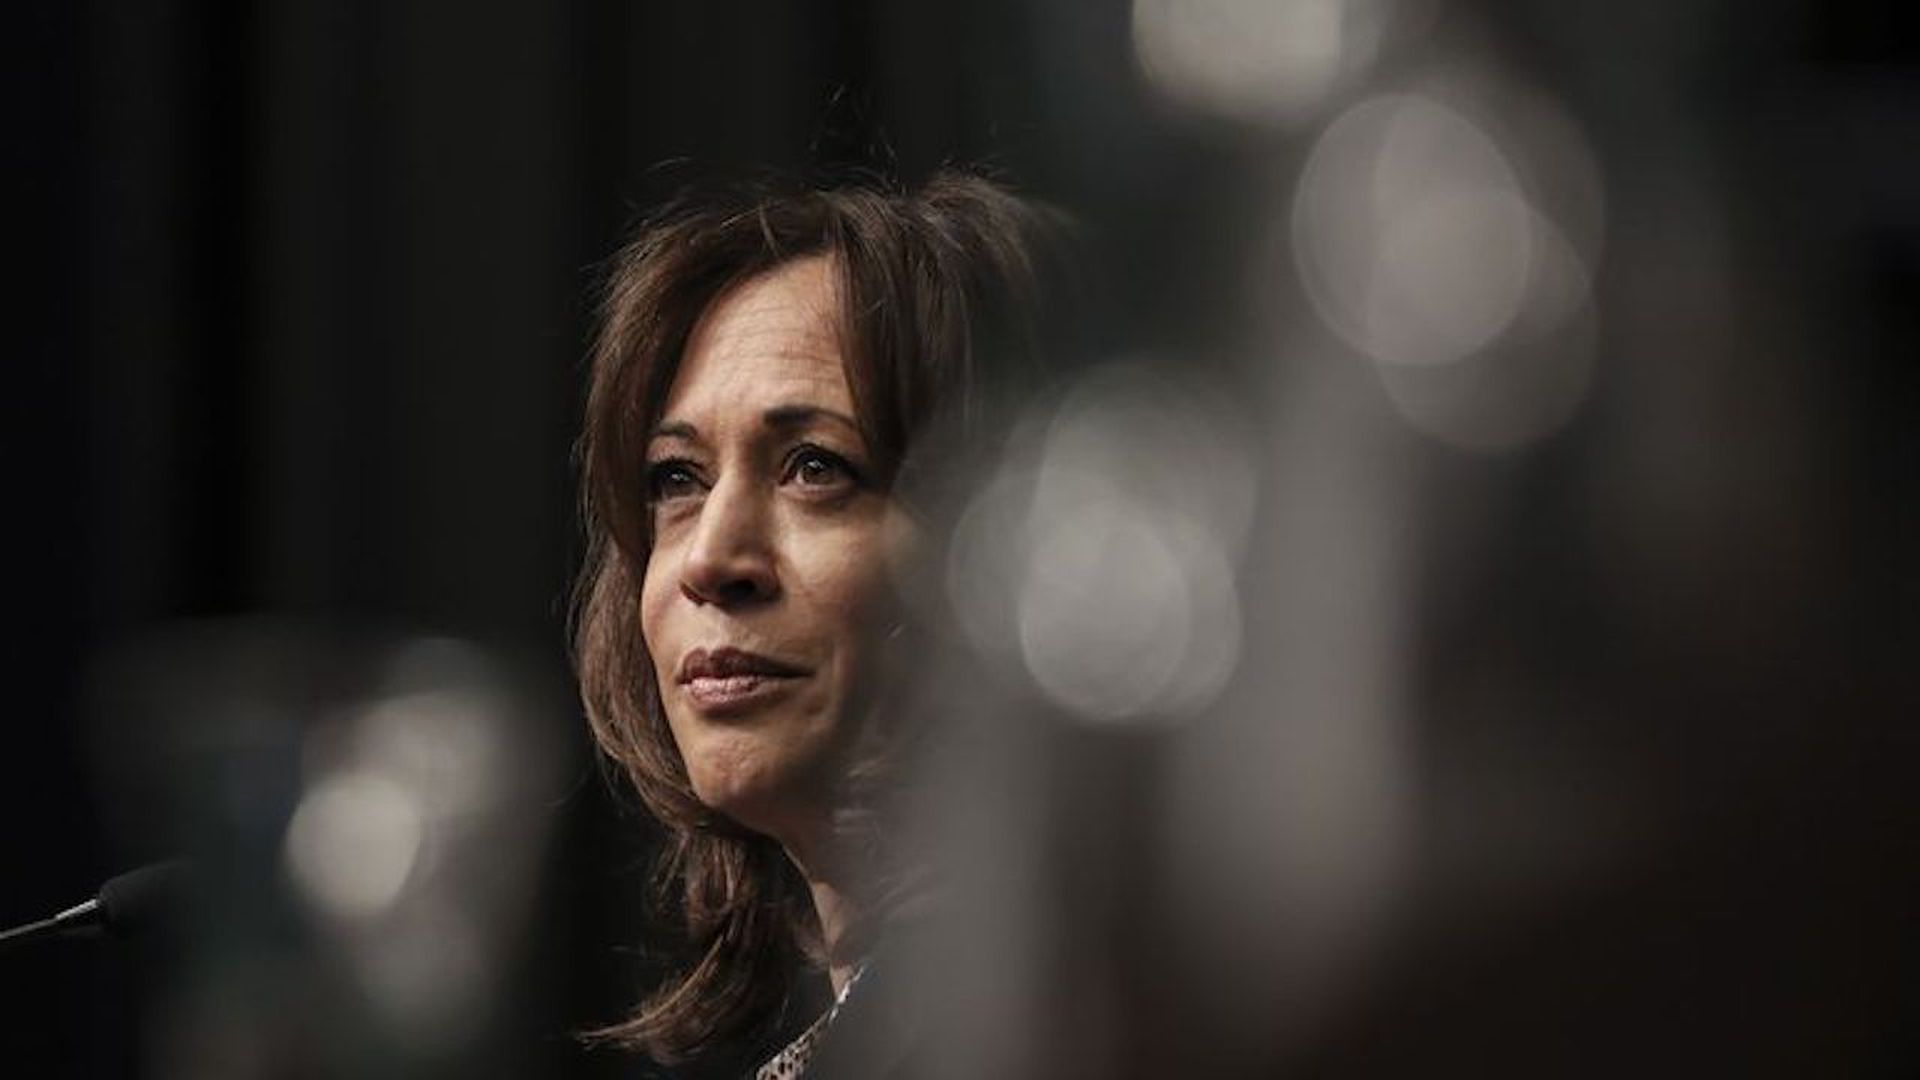 Kamala Harris wants to use the power of the presidency to close gender pay gap